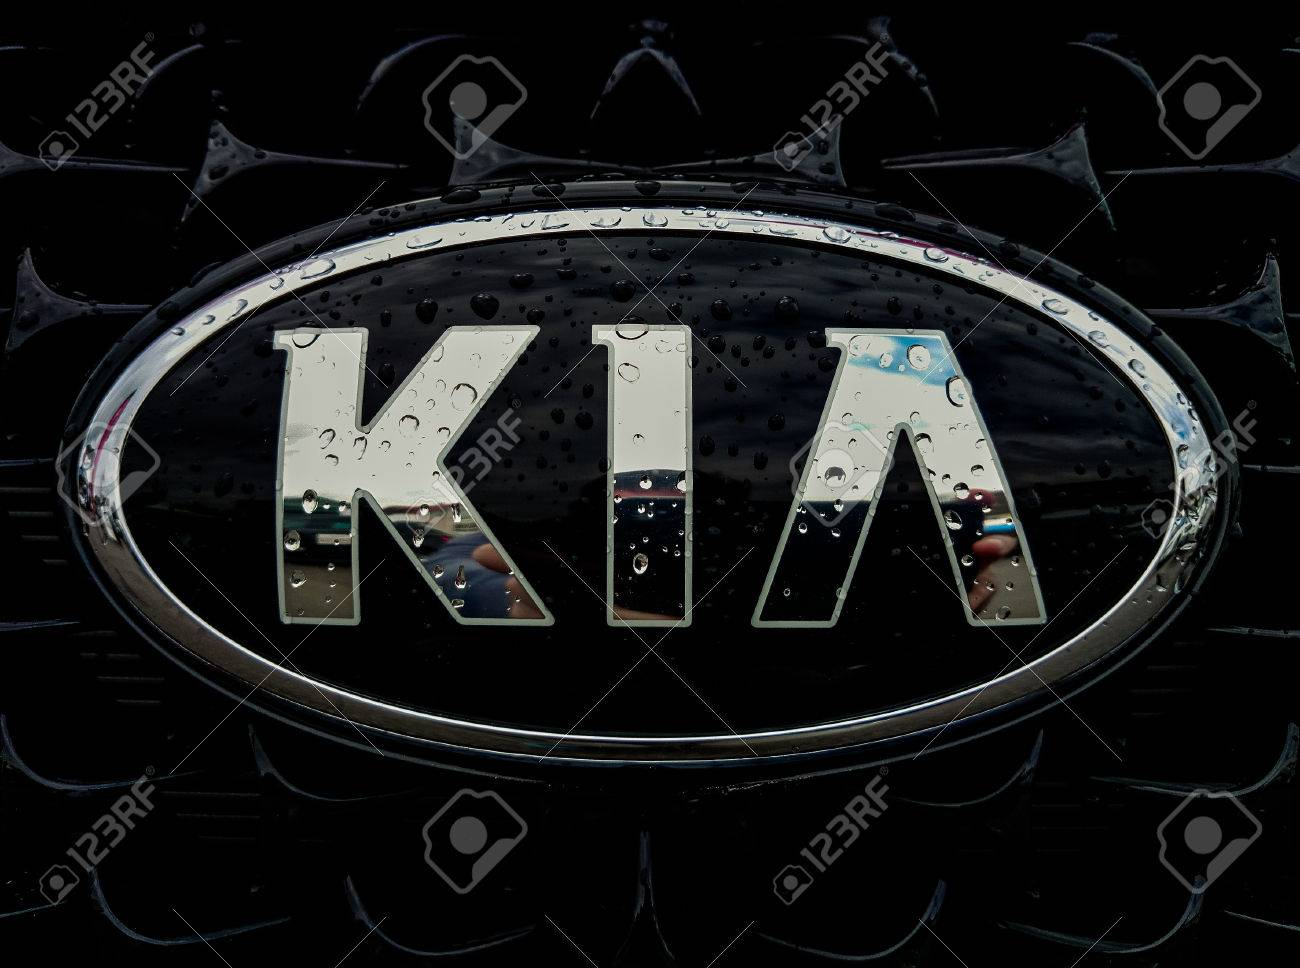 kia korea second considers s automaker gswilda largest within bear rolling for out sedan corp separate will motors stinger forum entirely debuting half the south sports threads new of with logo emblem first a